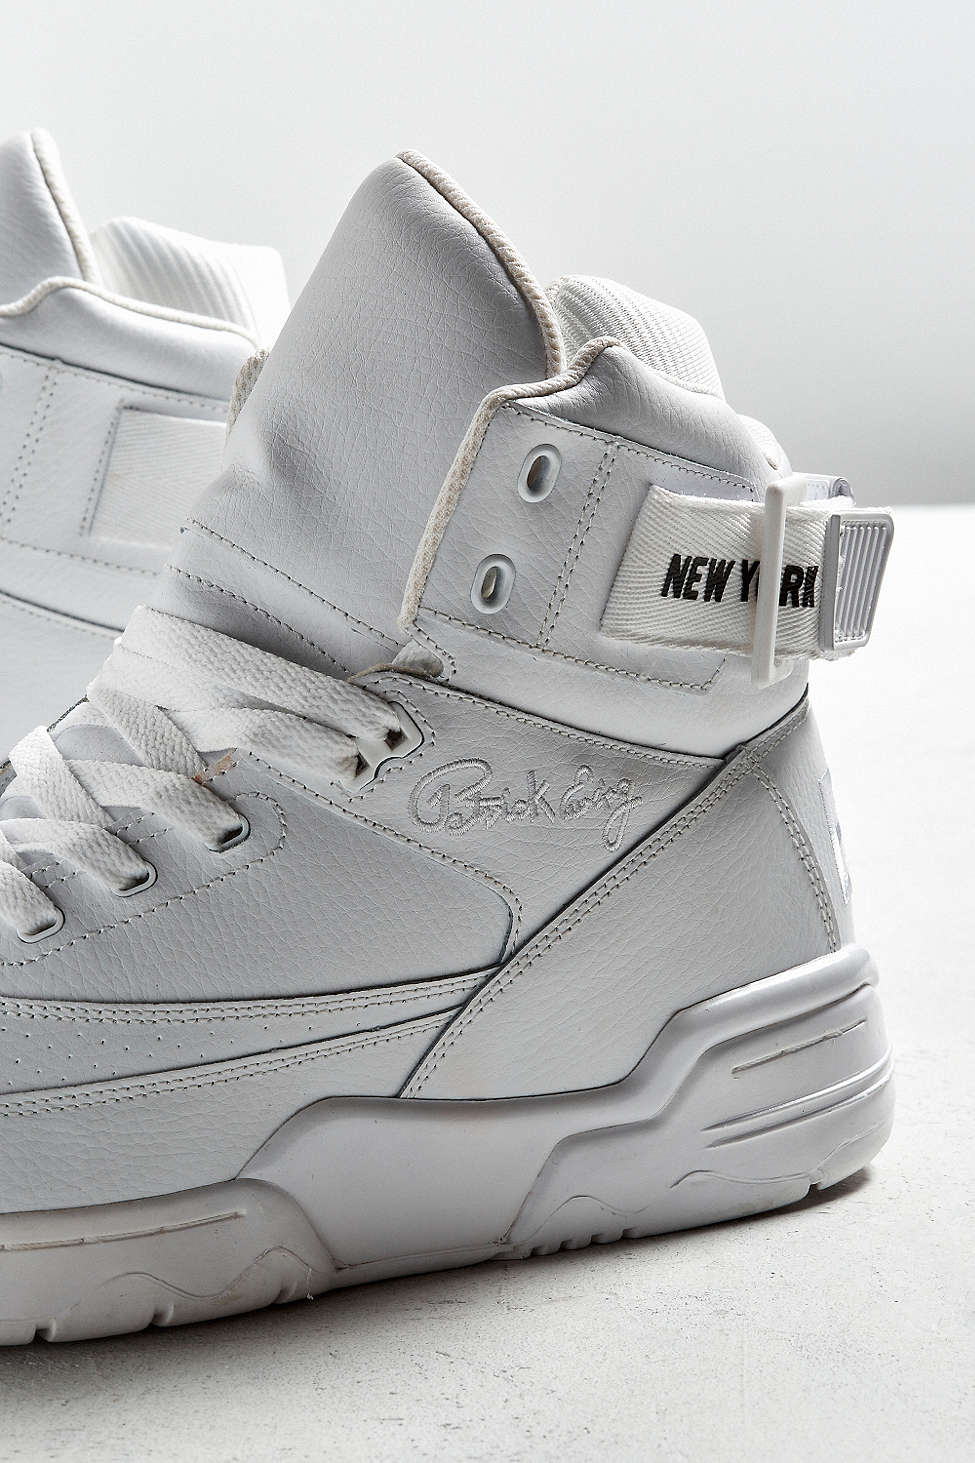 urban outfitters x ewing 33 hi NYC white black 1